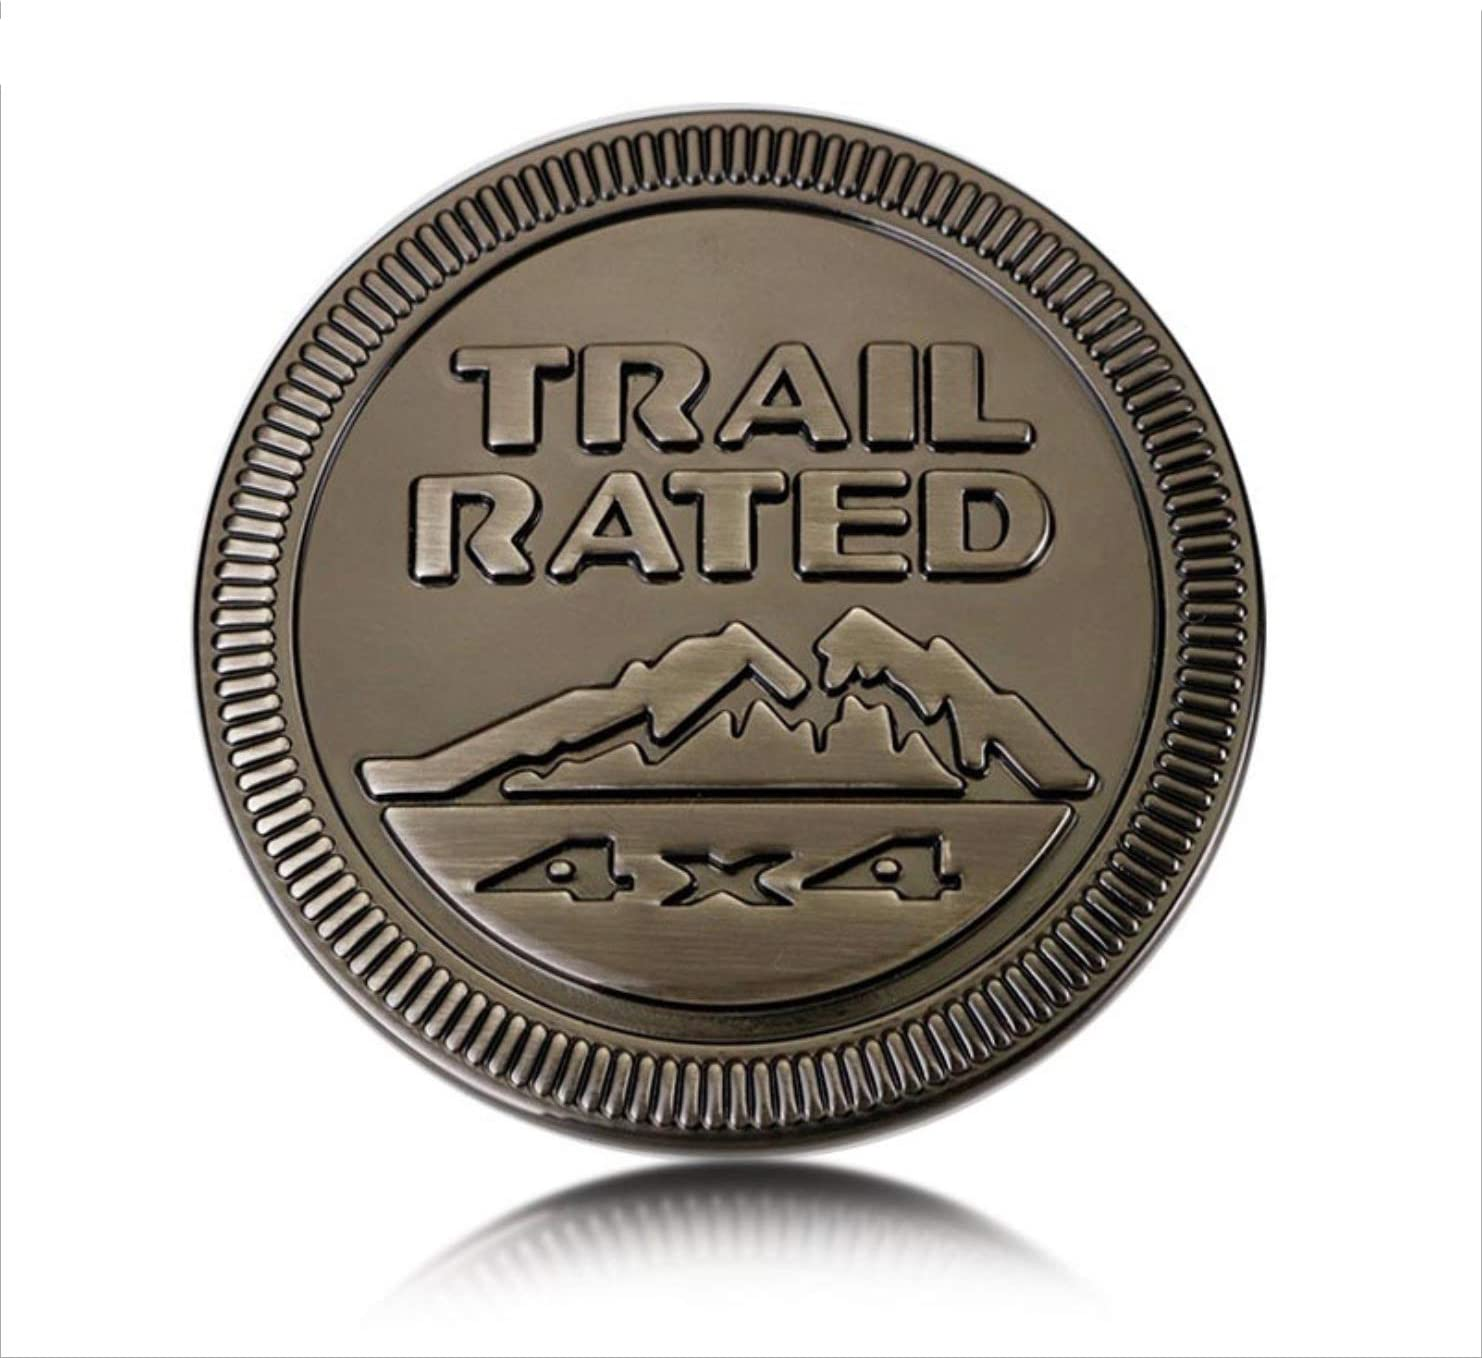 Red Jeep Wrangle Trail Rated Metal Badge Emblem Sticker Decal